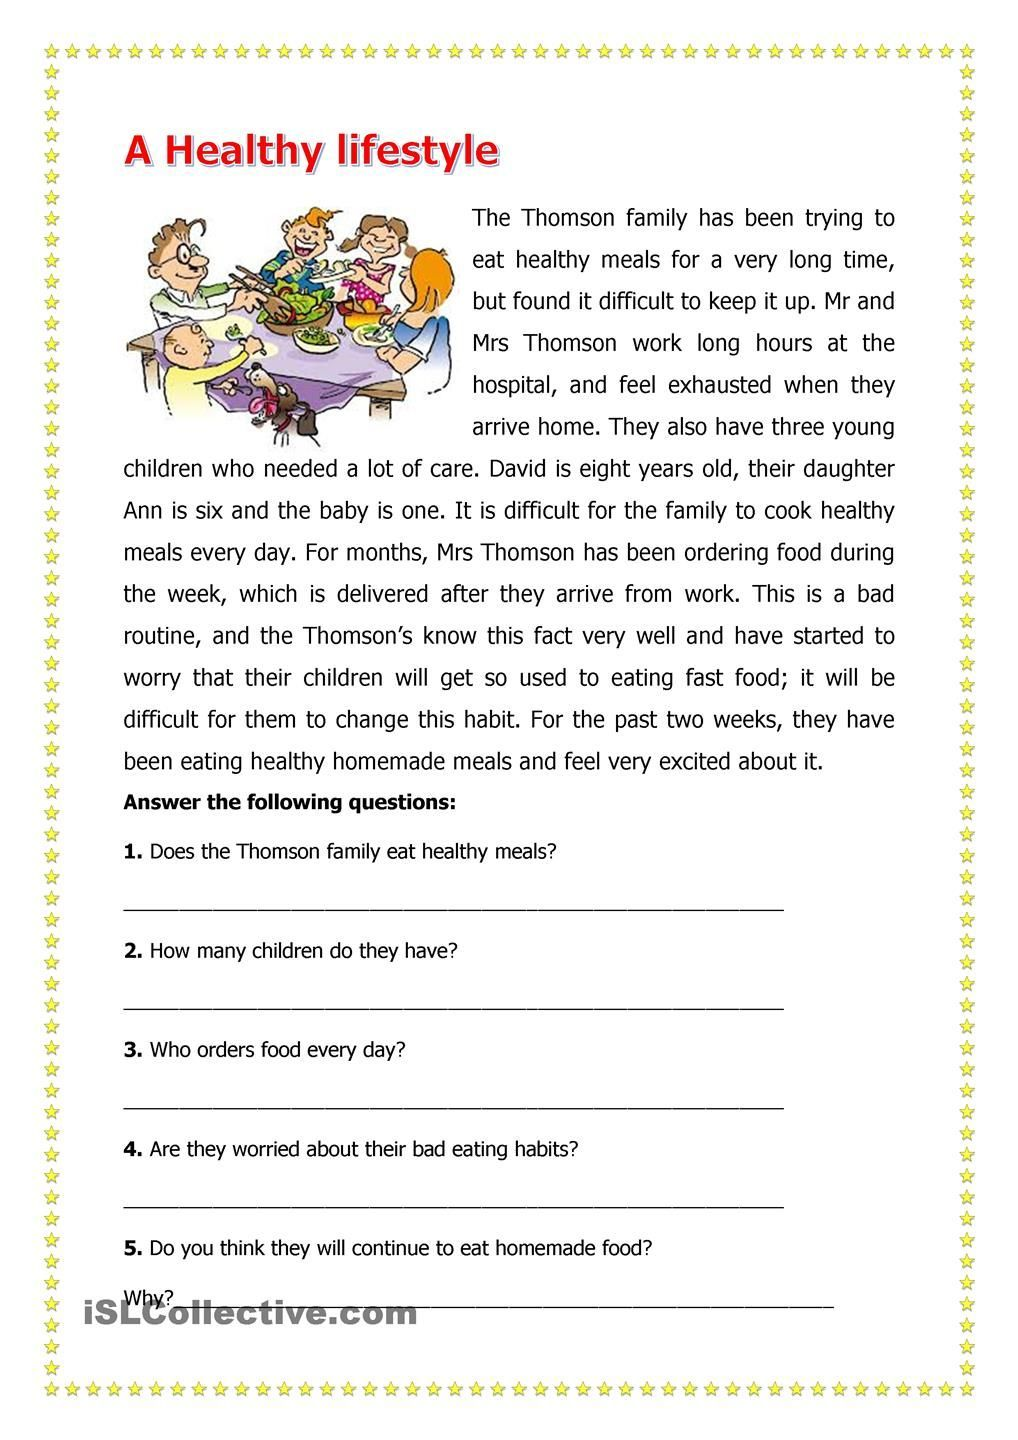 A Healthy Lifestyle Reading Comprehension Worksheets Reading Worksheets Comprehens In 2021 Reading Comprehension Worksheets Reading Worksheets Comprehension Worksheets